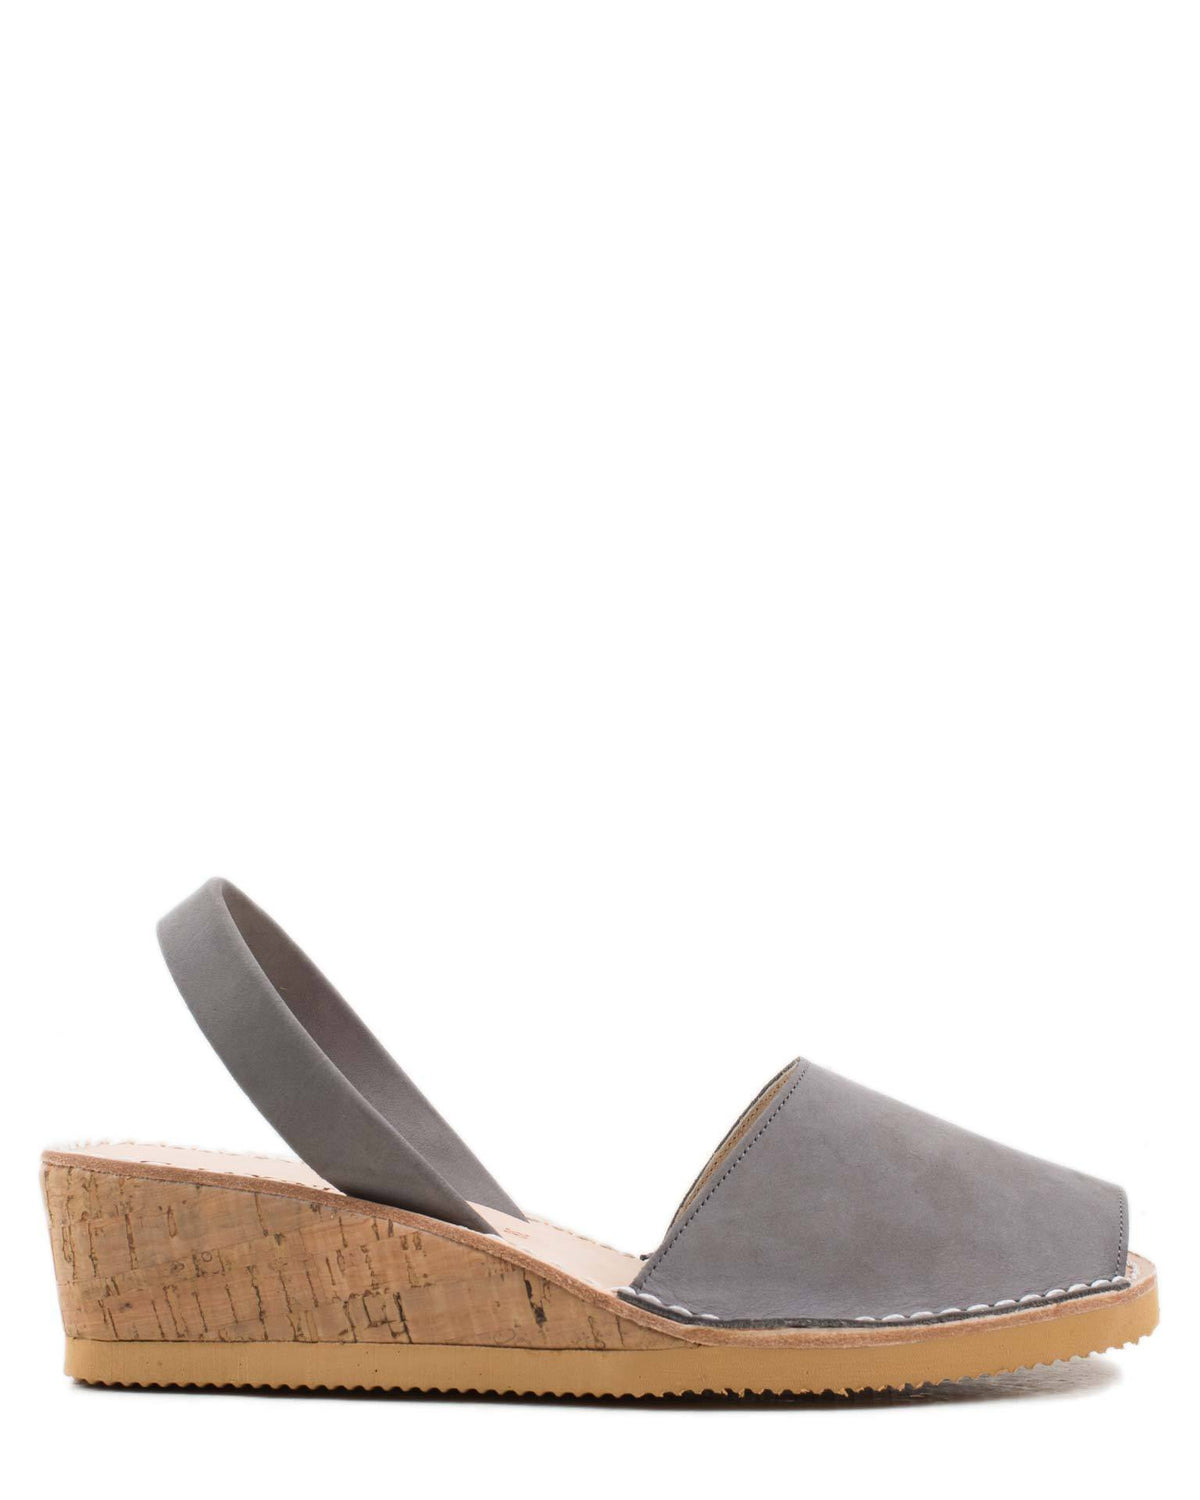 Calaxini Shoes Topo Nubuck / 36 Wedge Sandal